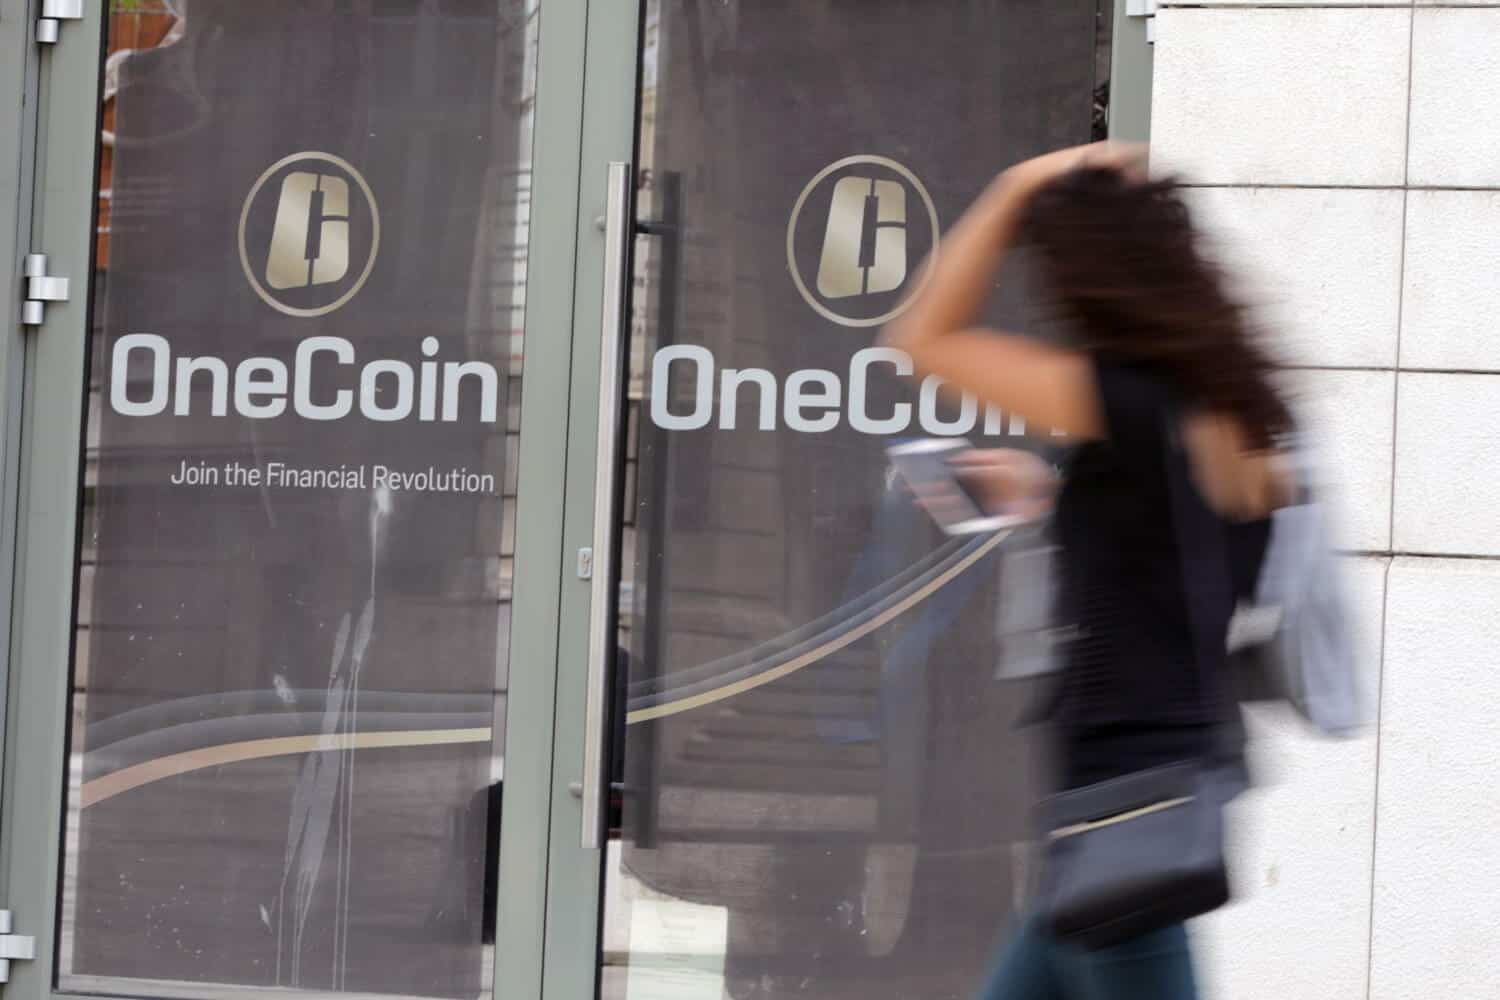 Onecoin Cofounder's Indictment Documents Unsealed by US Court